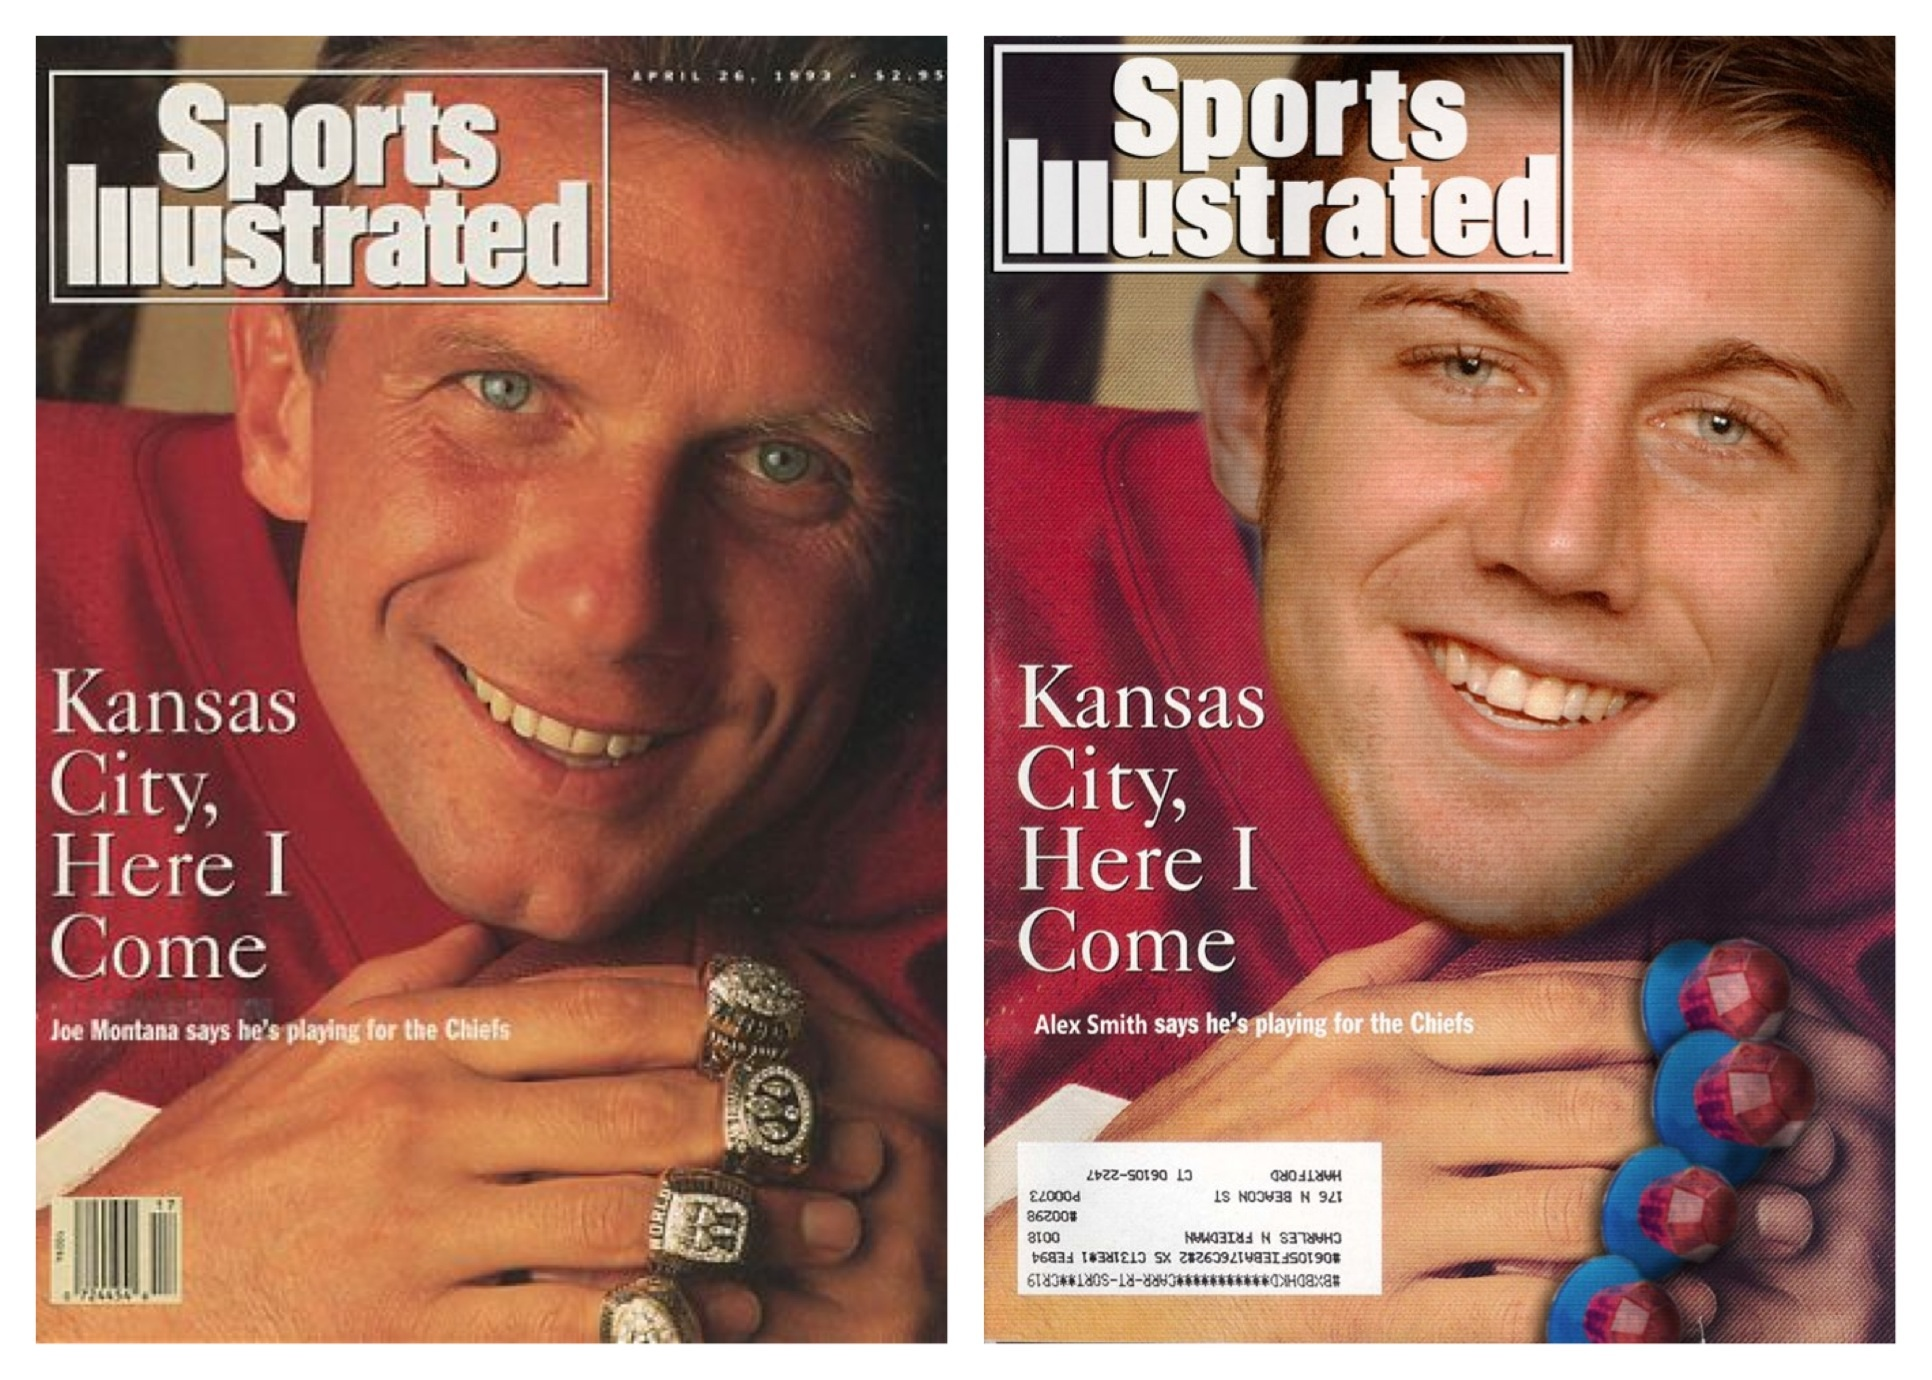 montanasmith welcome to kansas city, alex smith joe montana's right arm,Alex Smith Meme